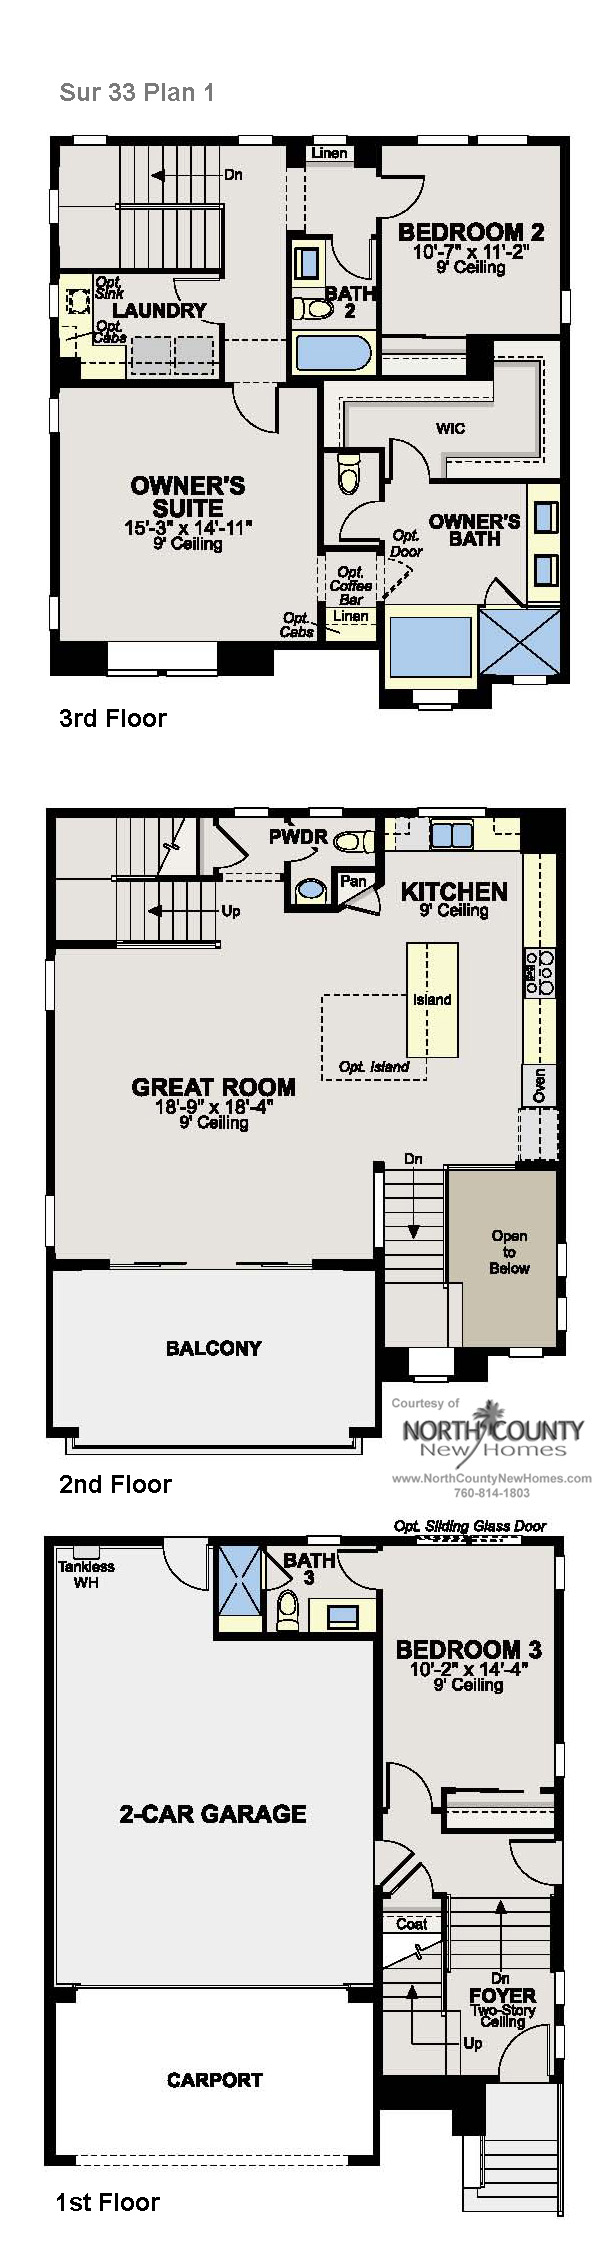 New homes in Del Sur, San Diego. New construction homes floor plans